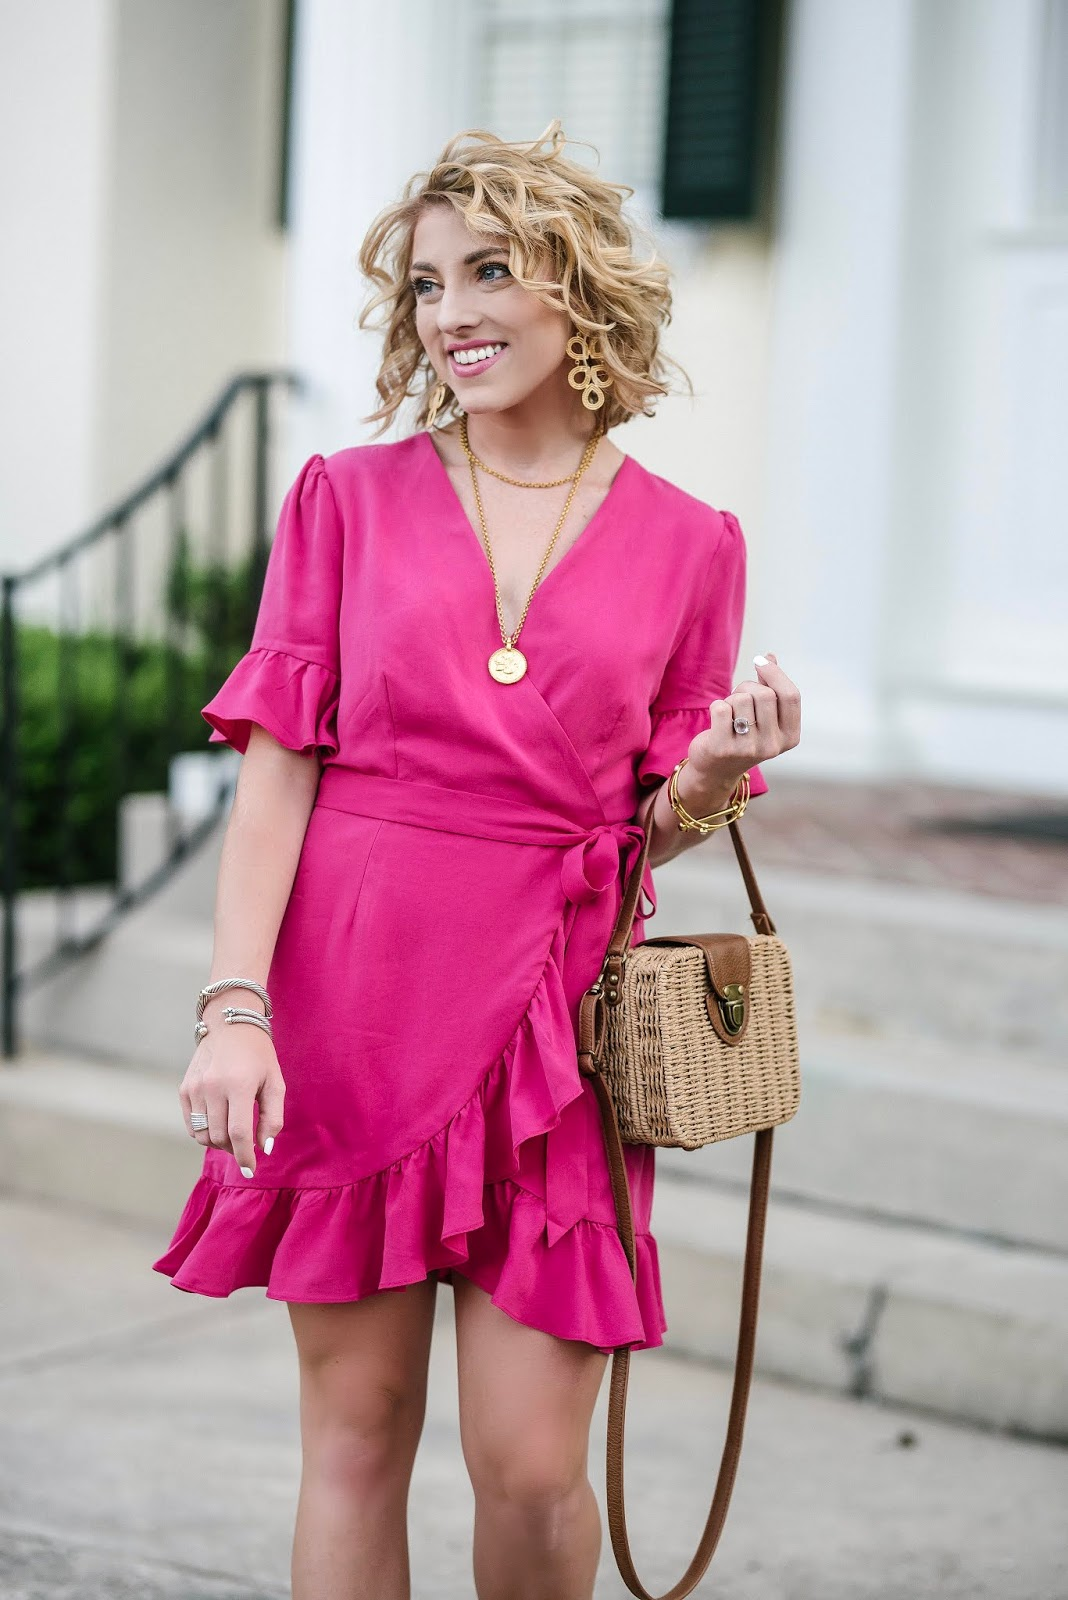 Little Pink Ruffle Wrap Dress - Something Delightful Blog